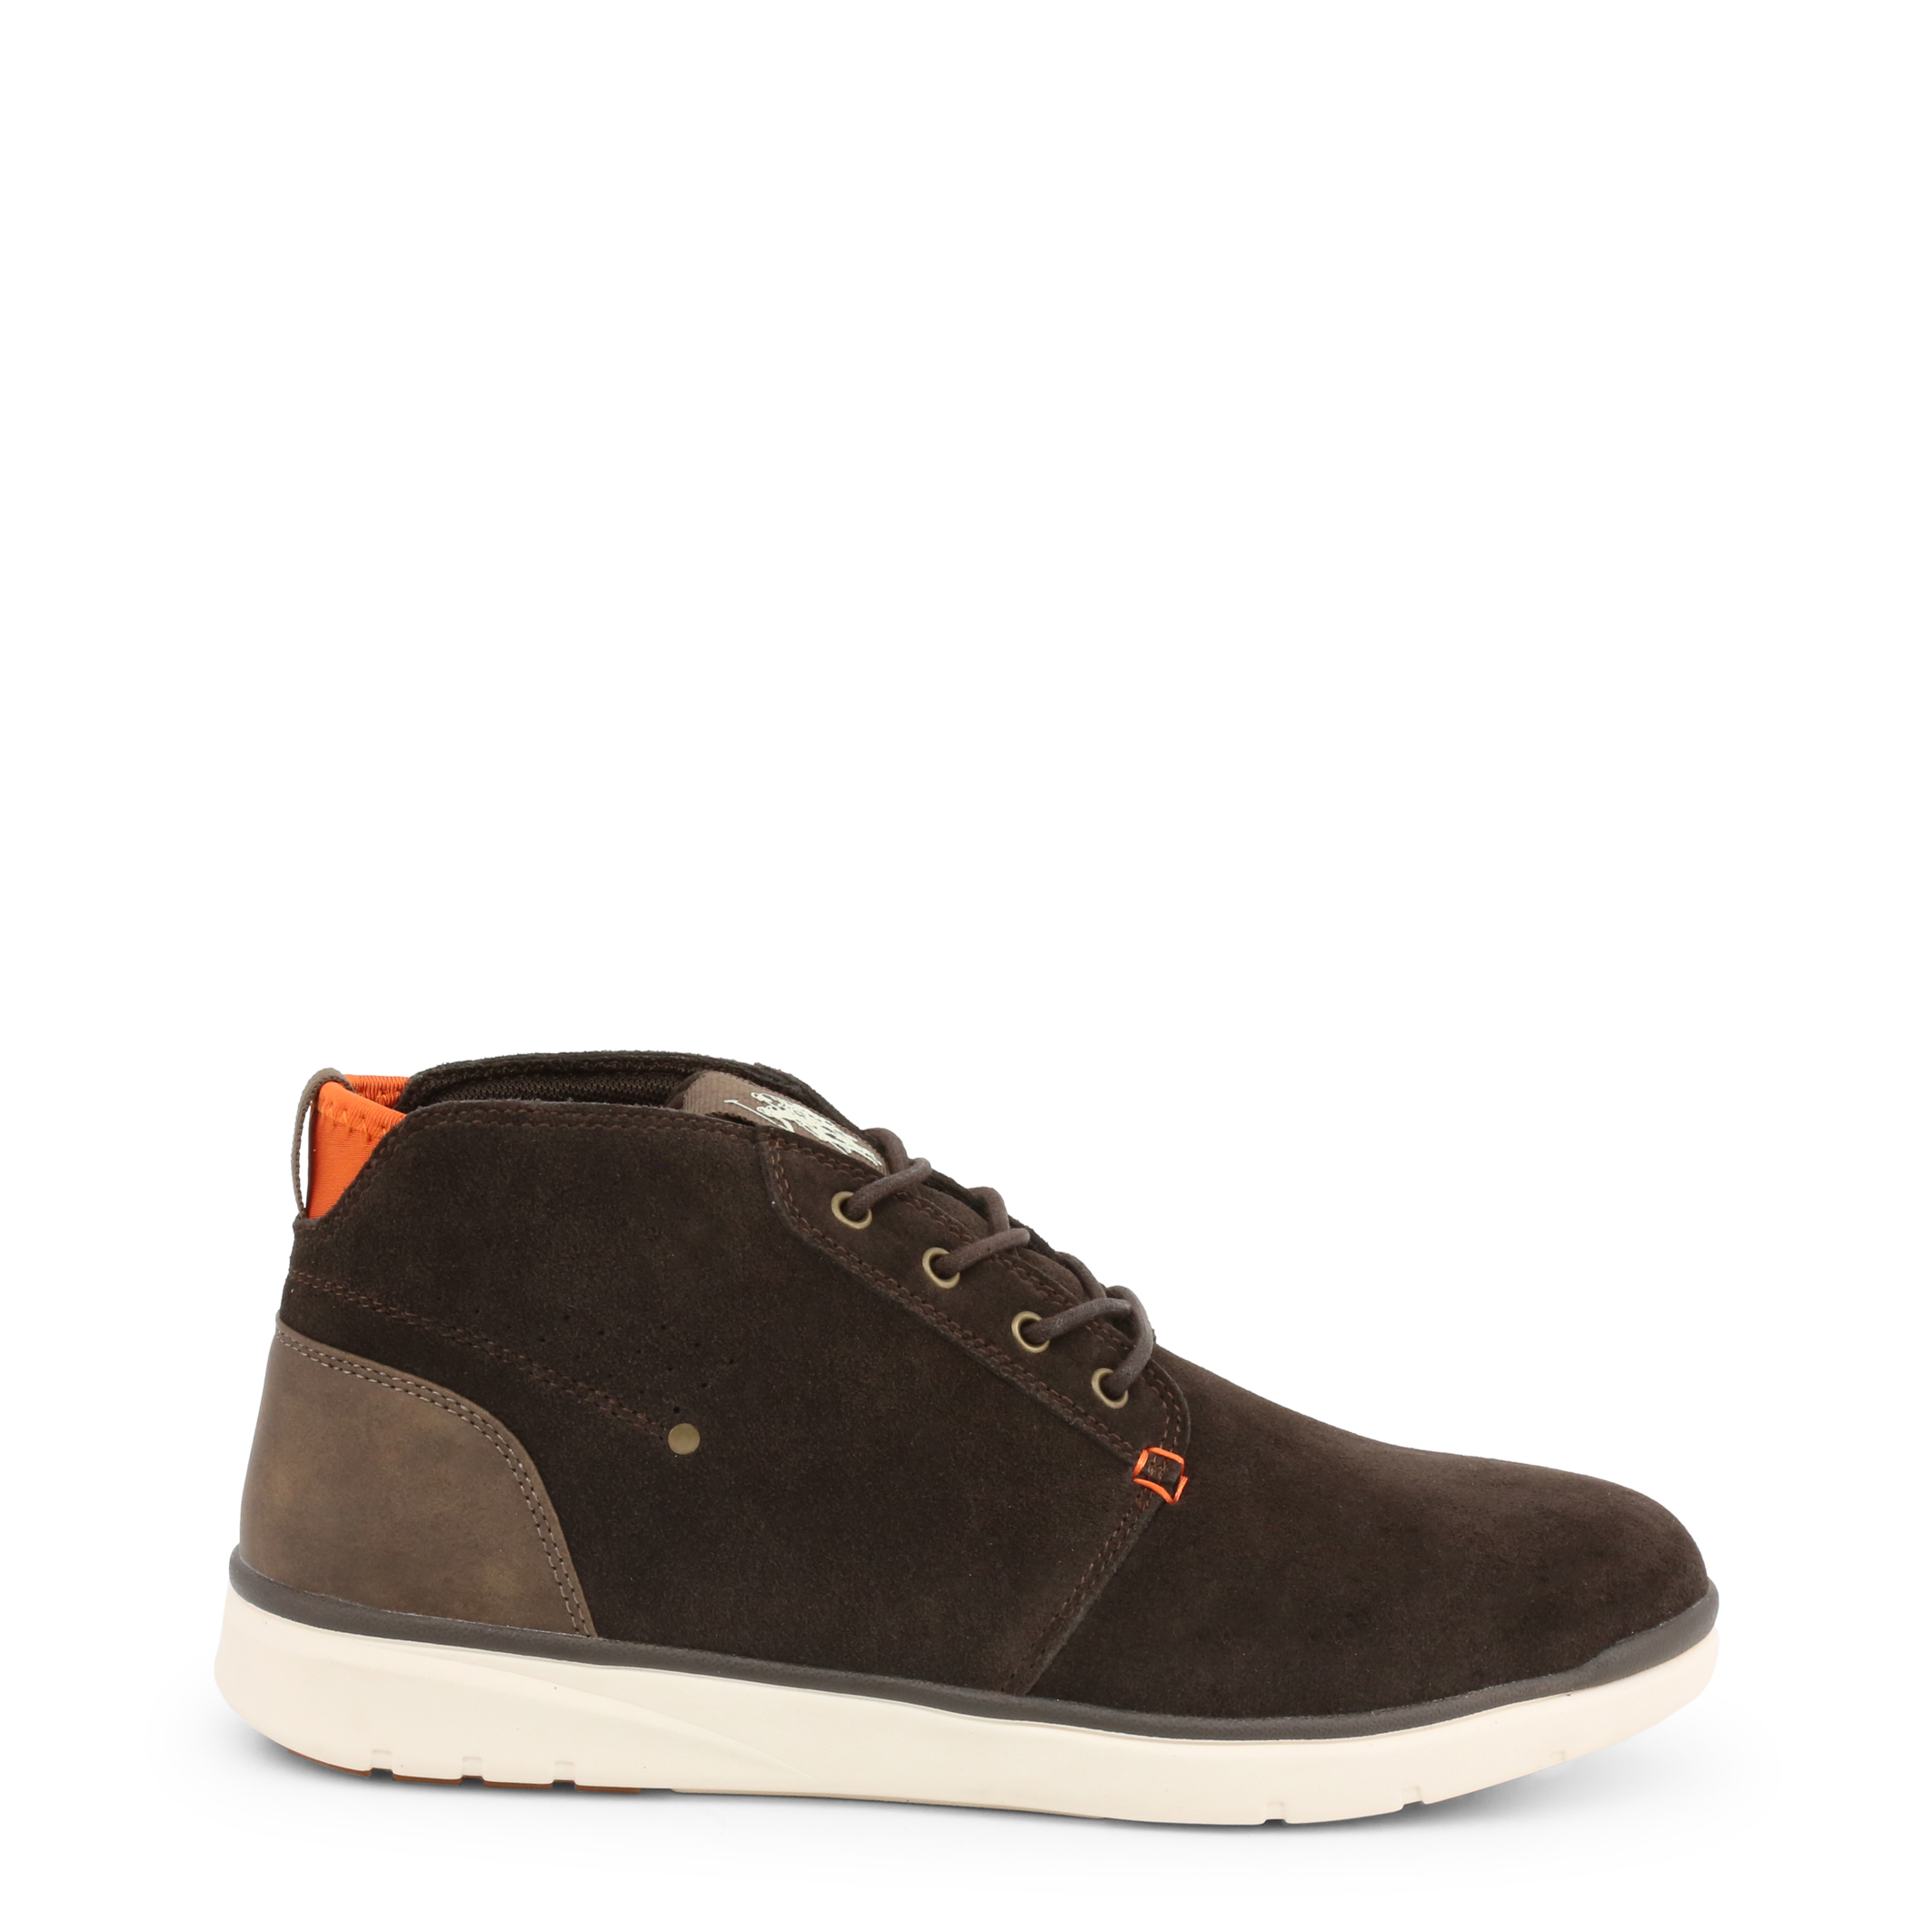 Chaussures de ville  U.S. Polo Assn. YGOR4128W9_SY1_DKBR brown